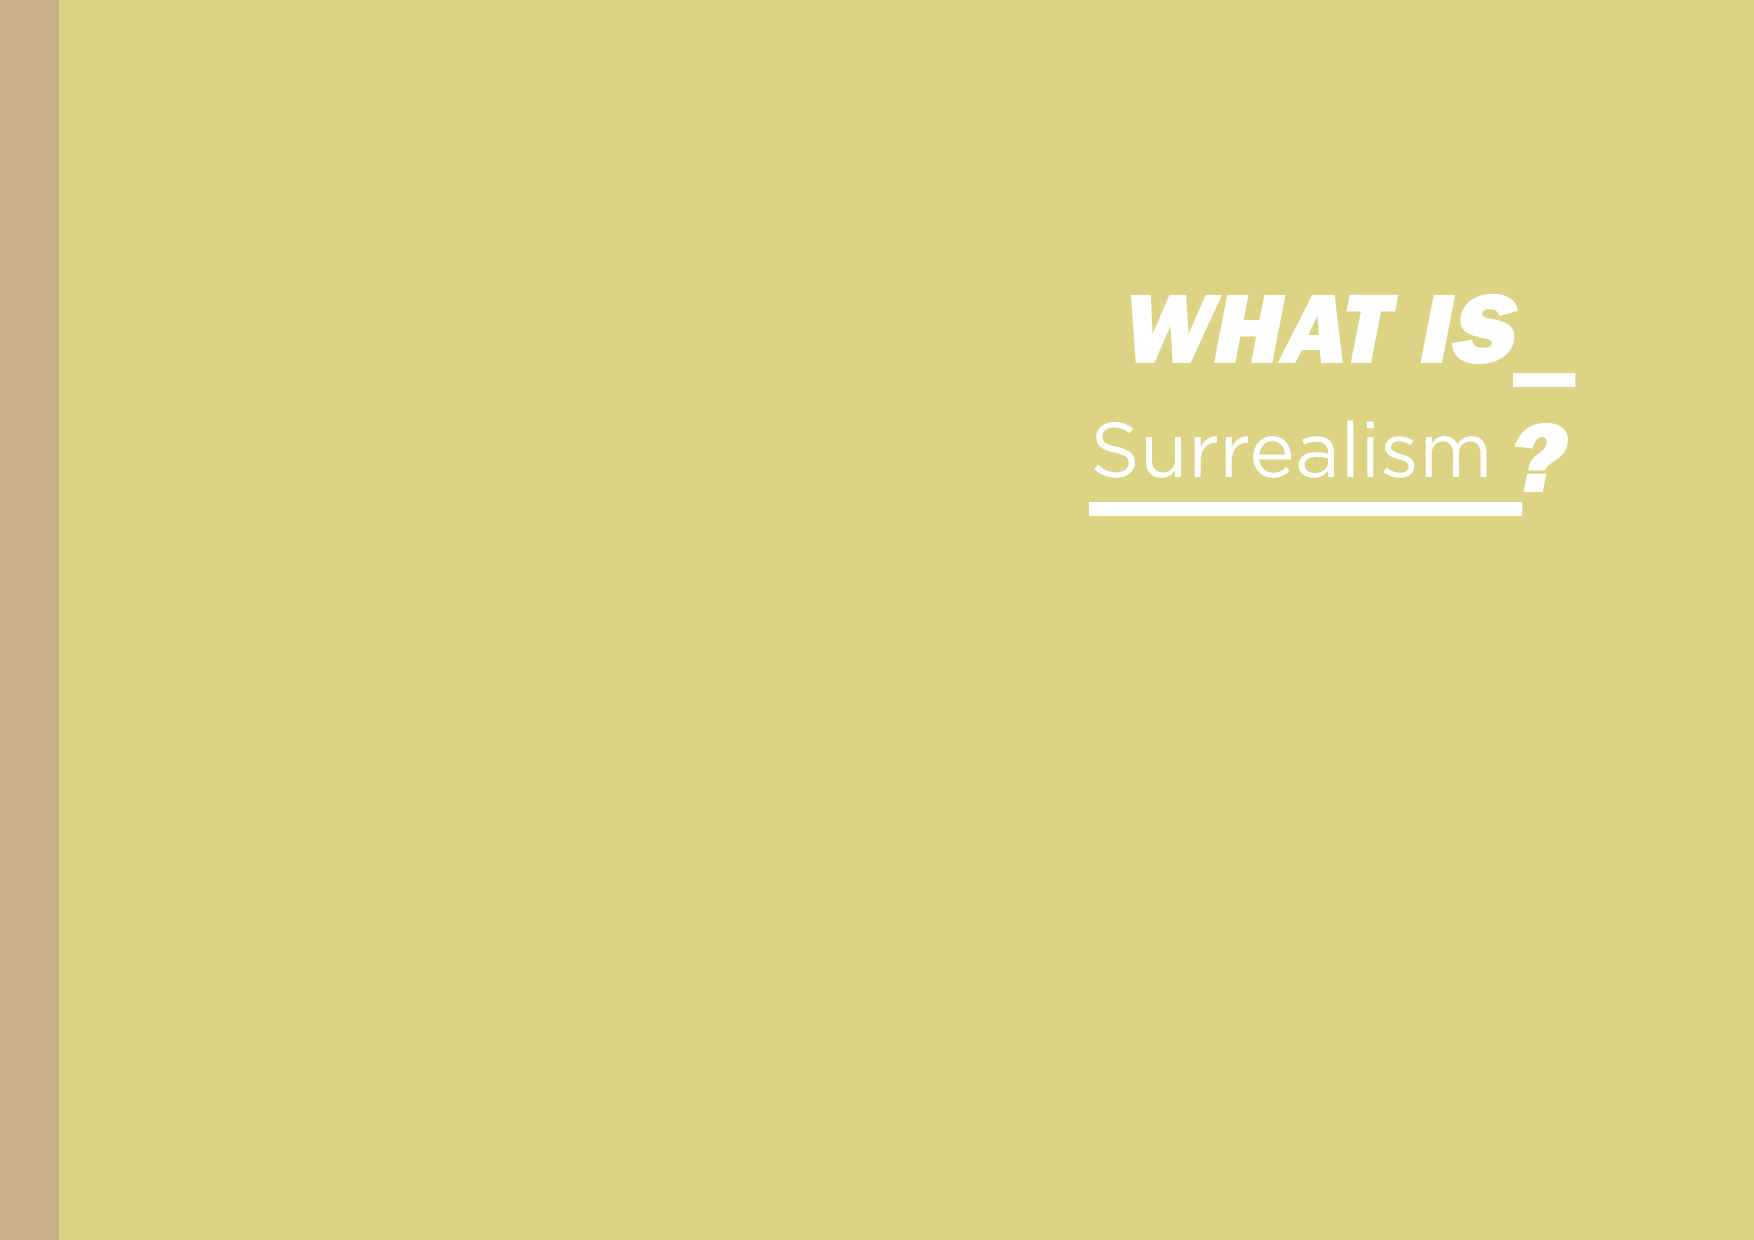 What is Surrealism